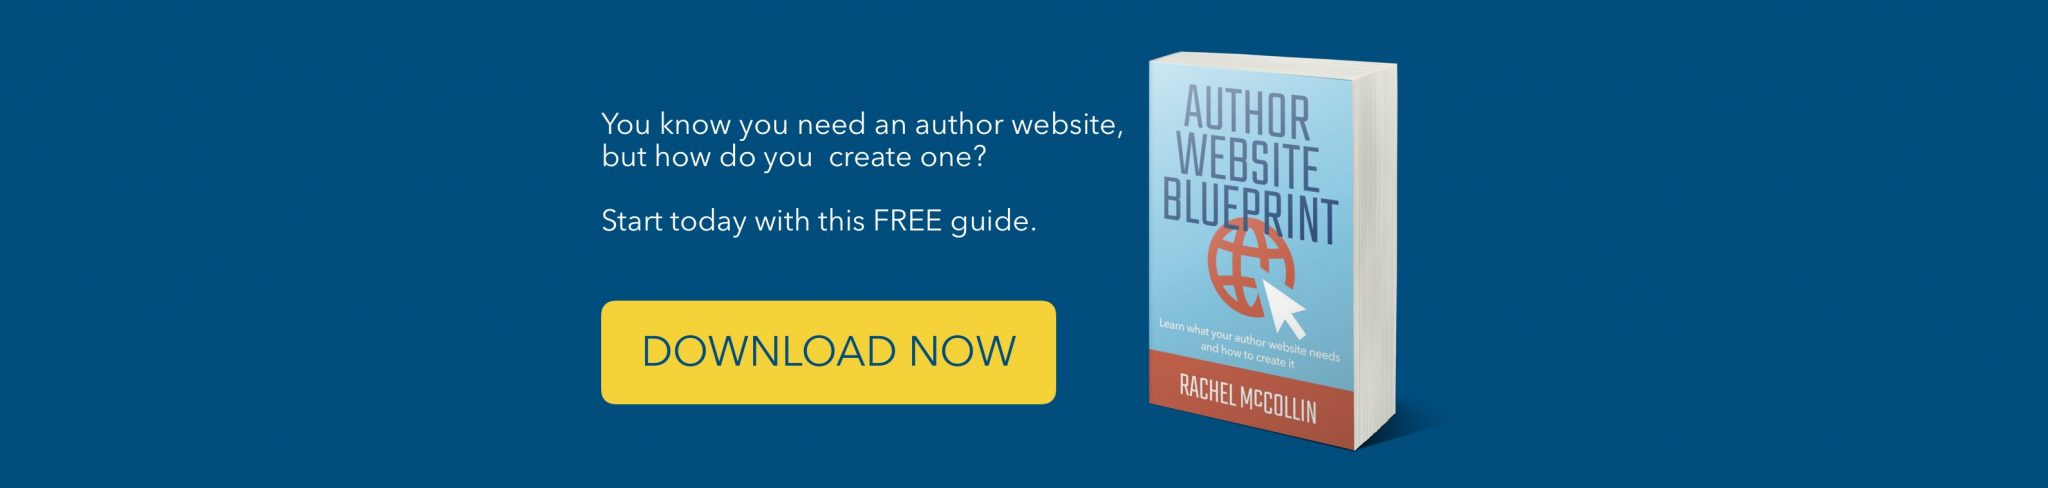 Author Website Blueprint - FREE book